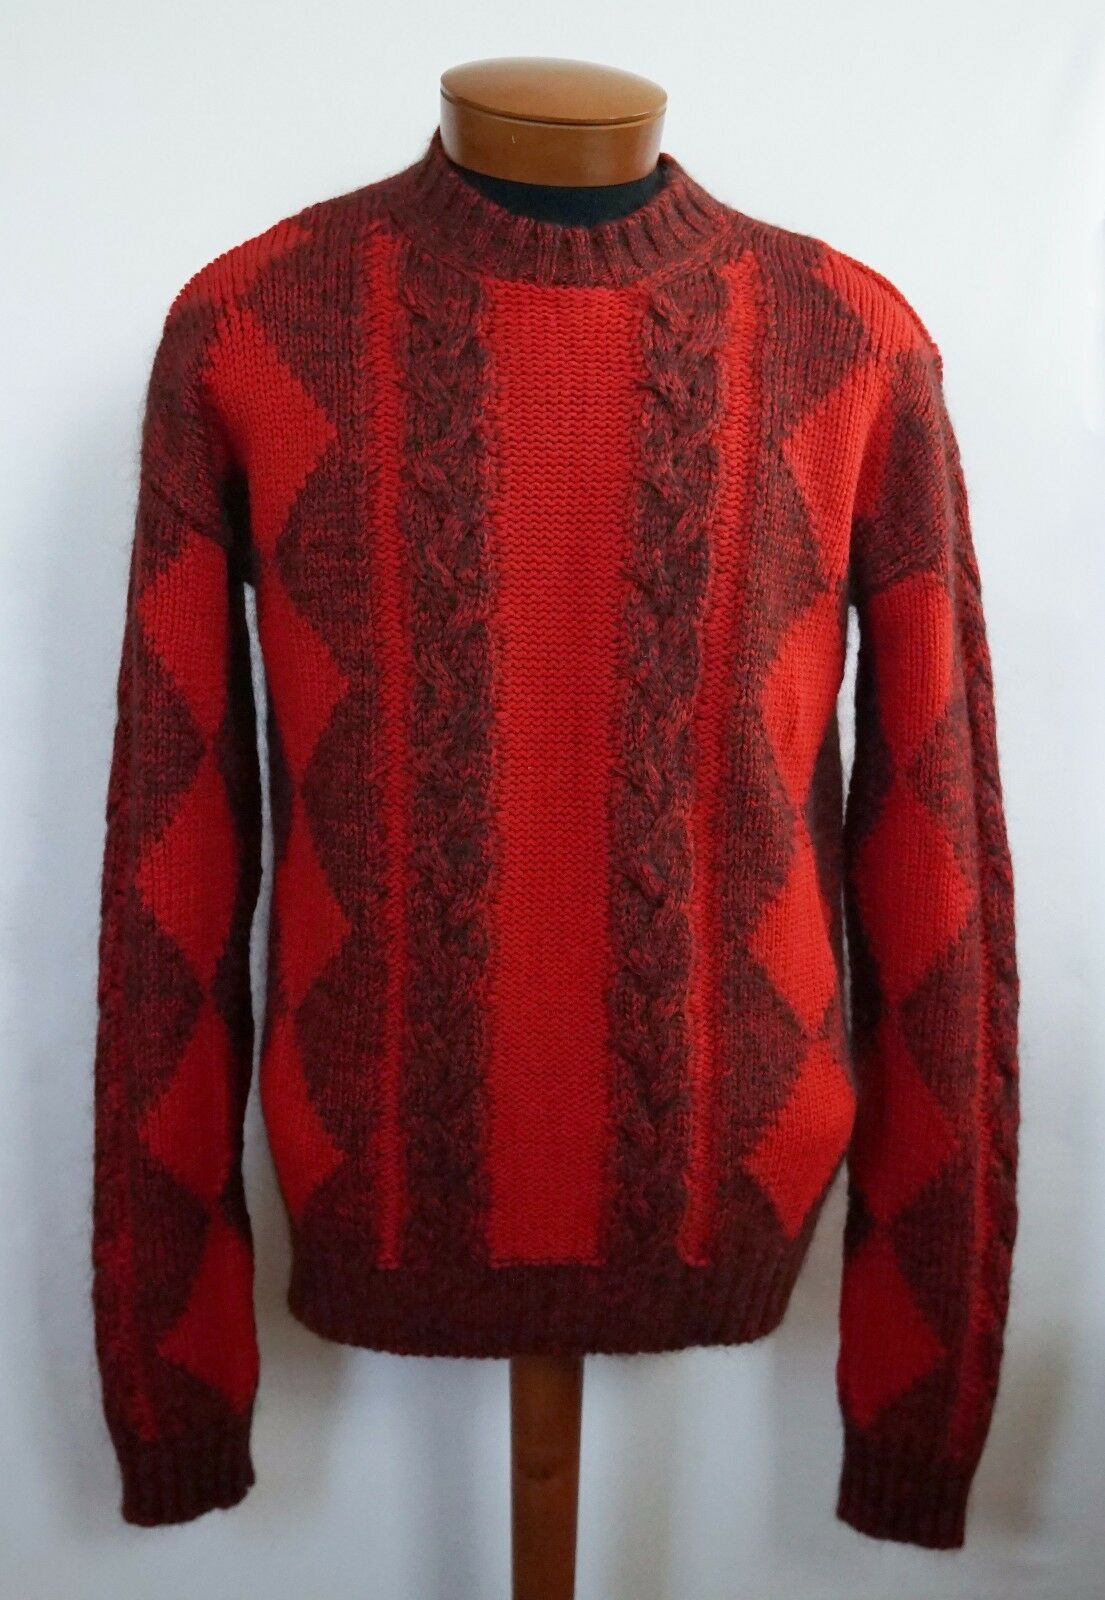 1225 NWT Authentic VERSACE WOOL MOHAIR Knitted Sweater IT-52/L IT-54/XL